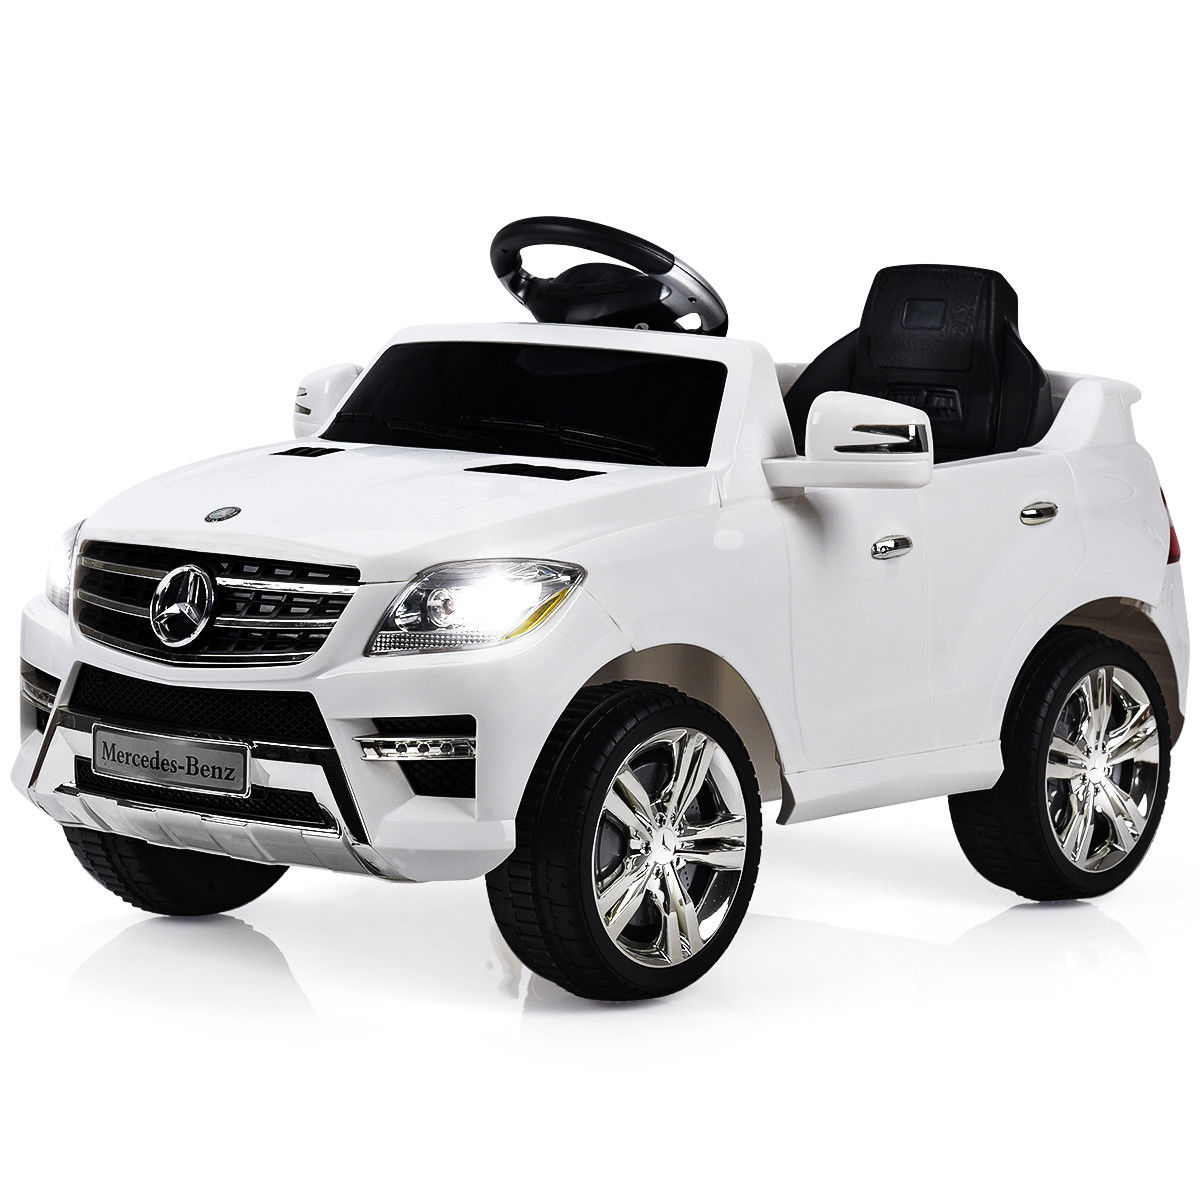 Costway Mercedes Benz Ml350 6v Electric Kids Ride On Car Licensed Mp3 Rc Remote Control 0